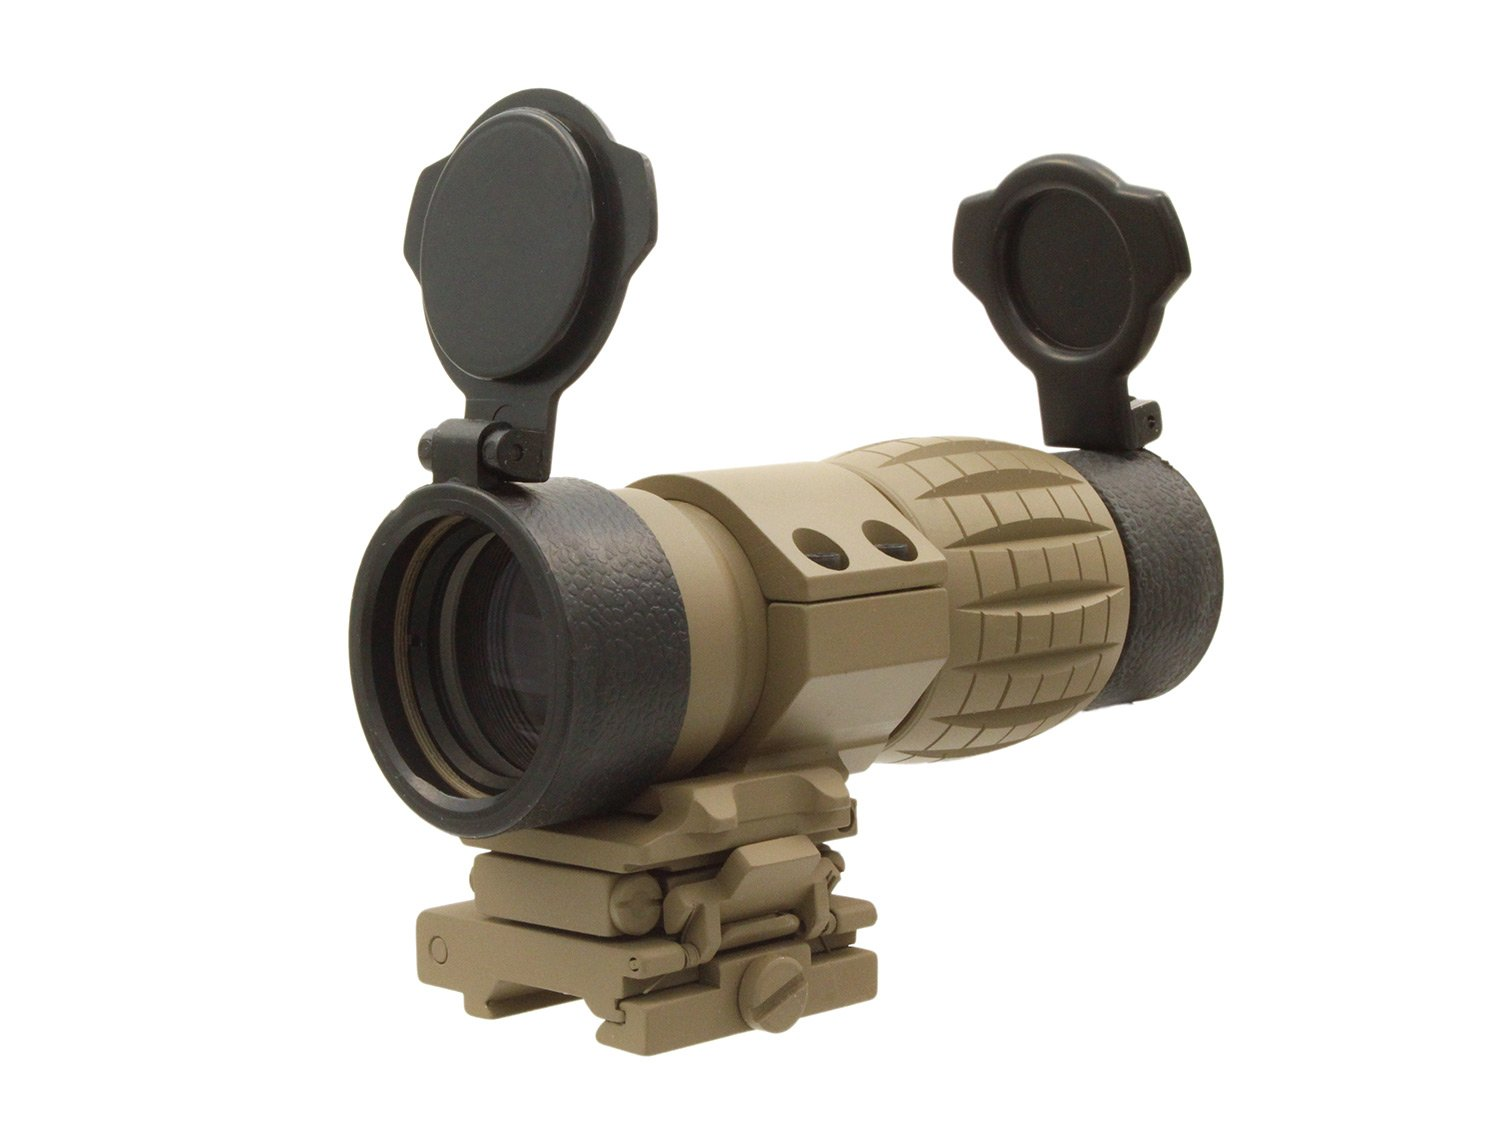 BEGADI 4x Magnifier with Flip-To-Side Weaver Mount, incl. FlipUp Caps, TAN